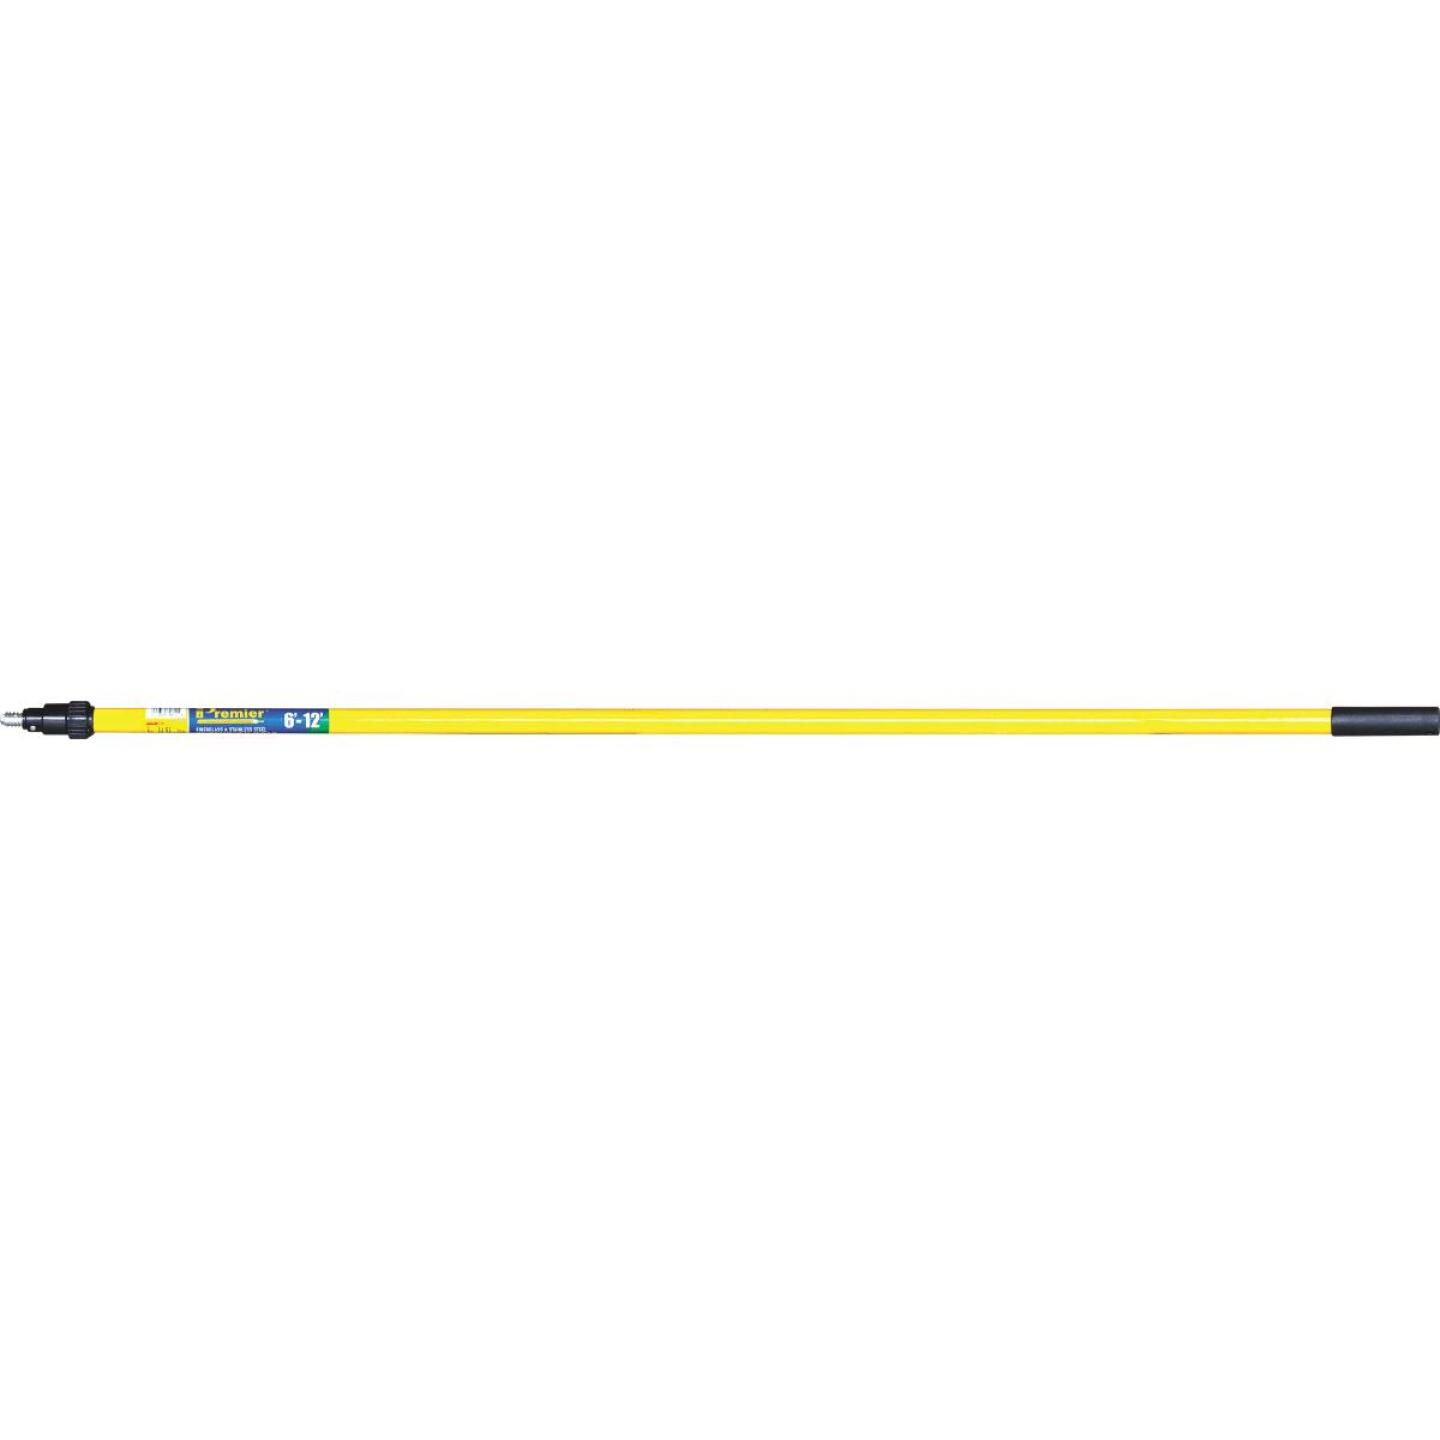 Premier 6 Ft. To 12 Ft. Telescoping Fiberglass & Stainless Steel External Twist Extension Pole Image 1